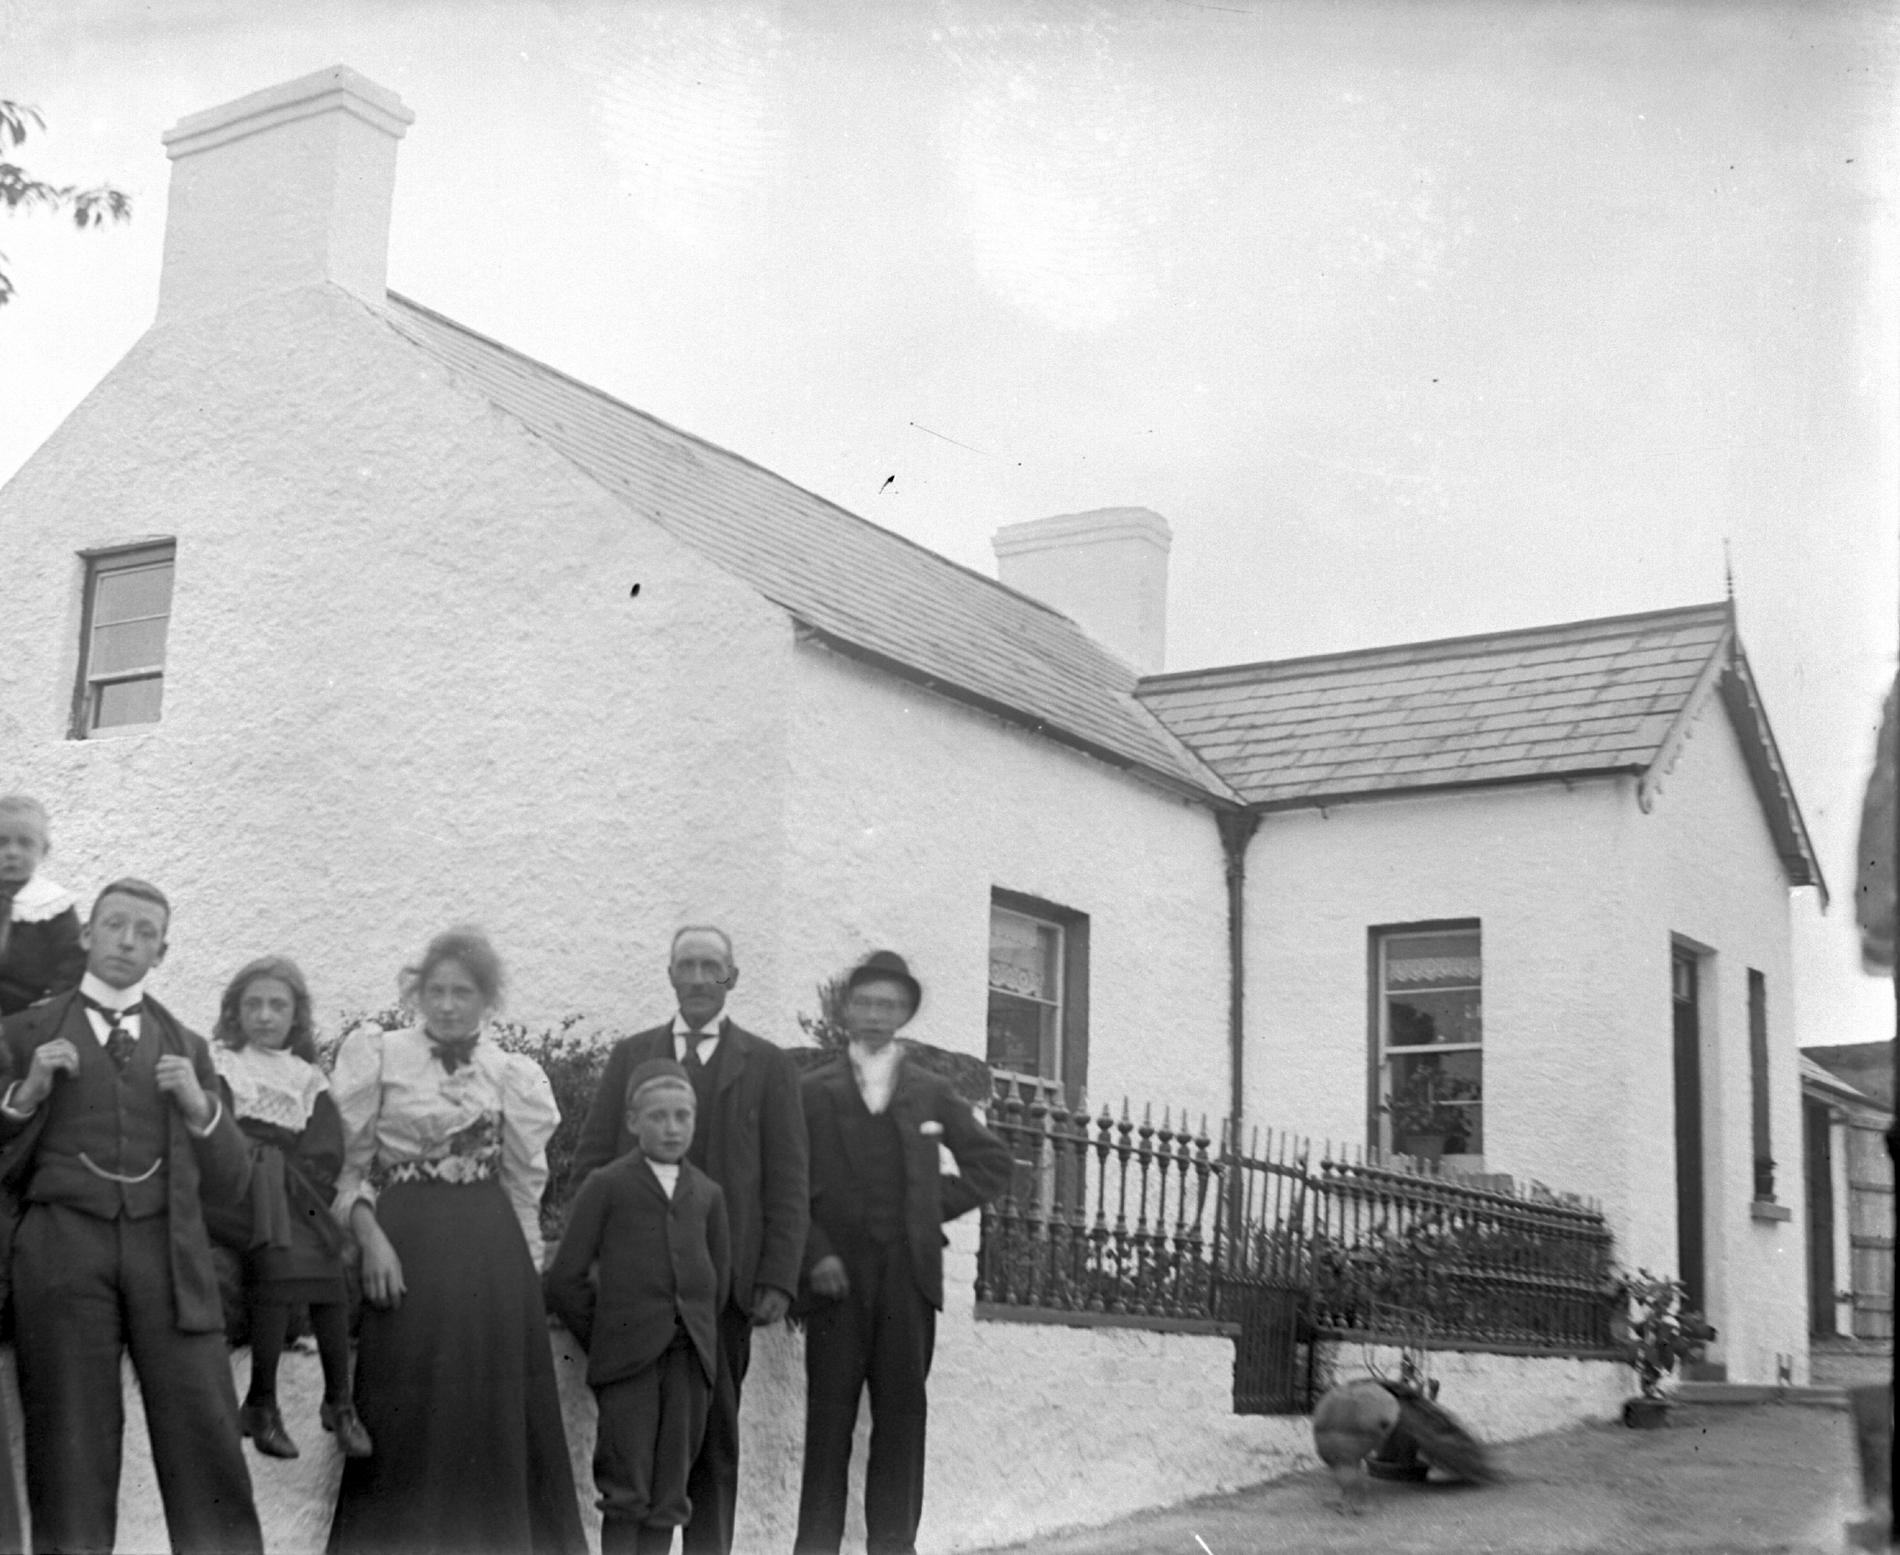 William John Wilson's house (photograph; glass plate negative)